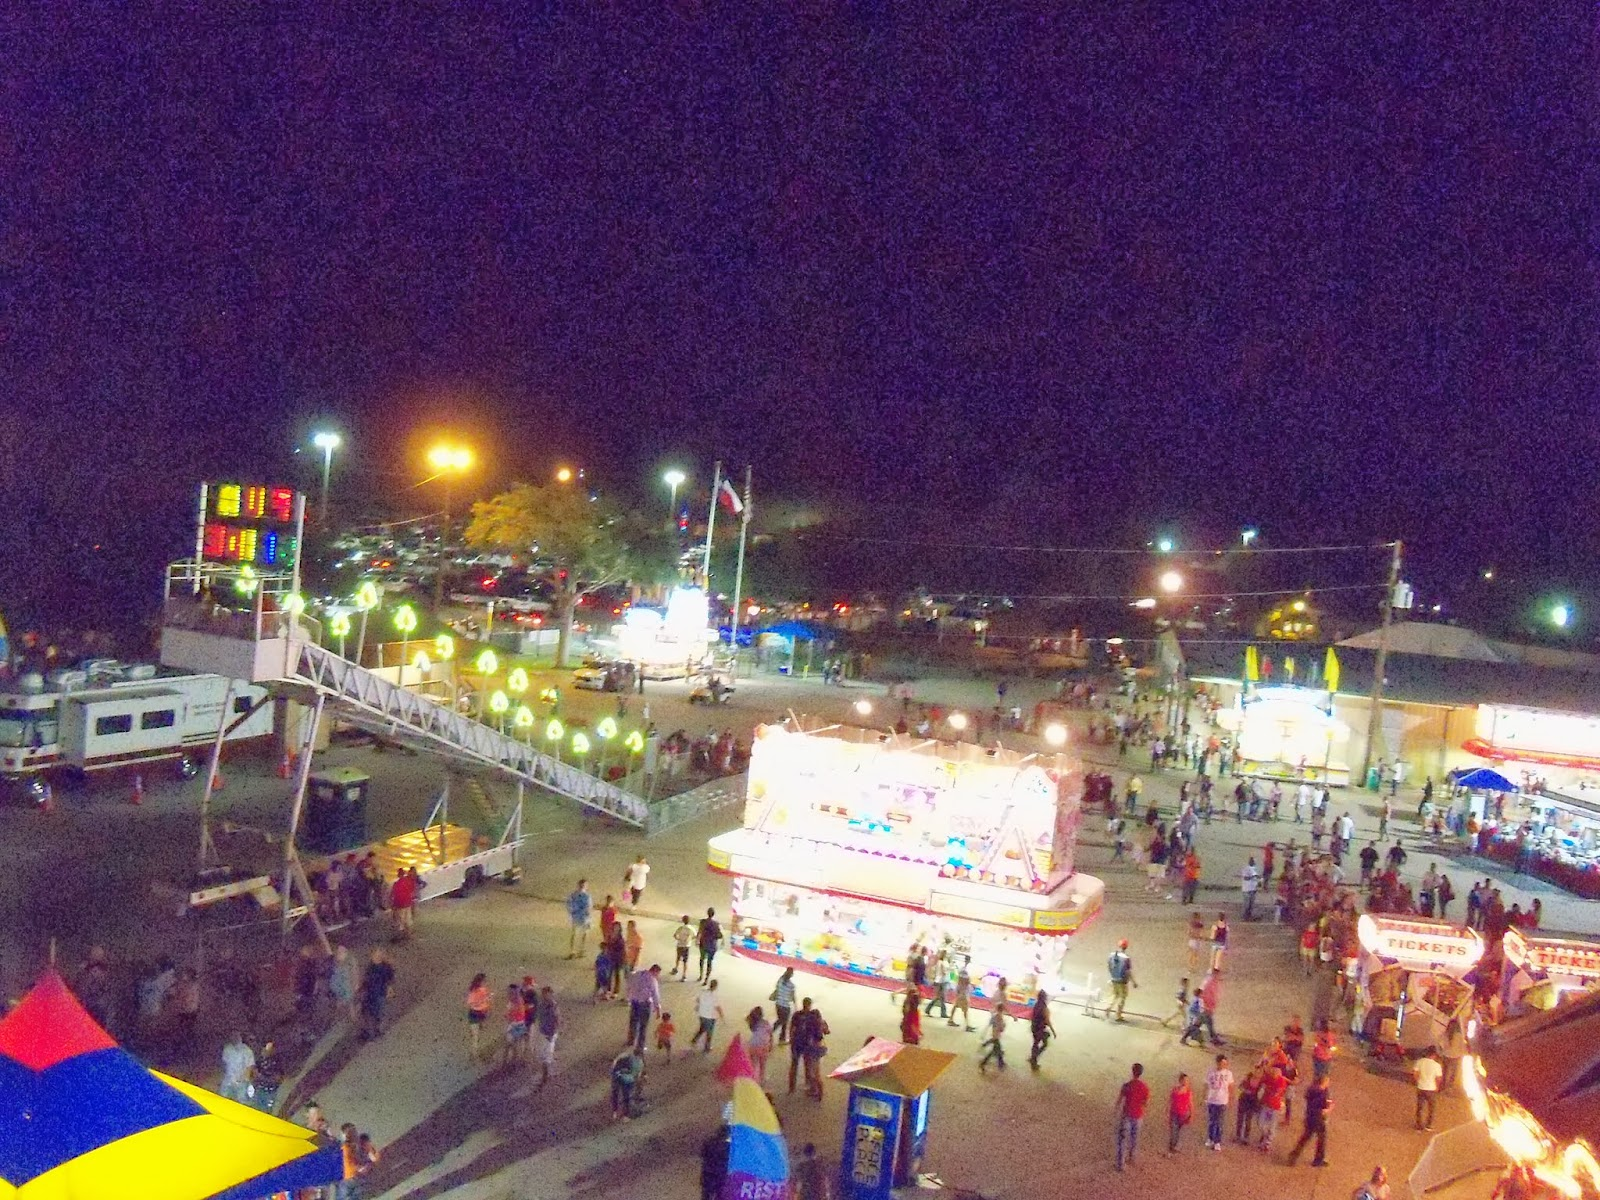 Fort Bend County Fair 2013 - 115_8045.JPG